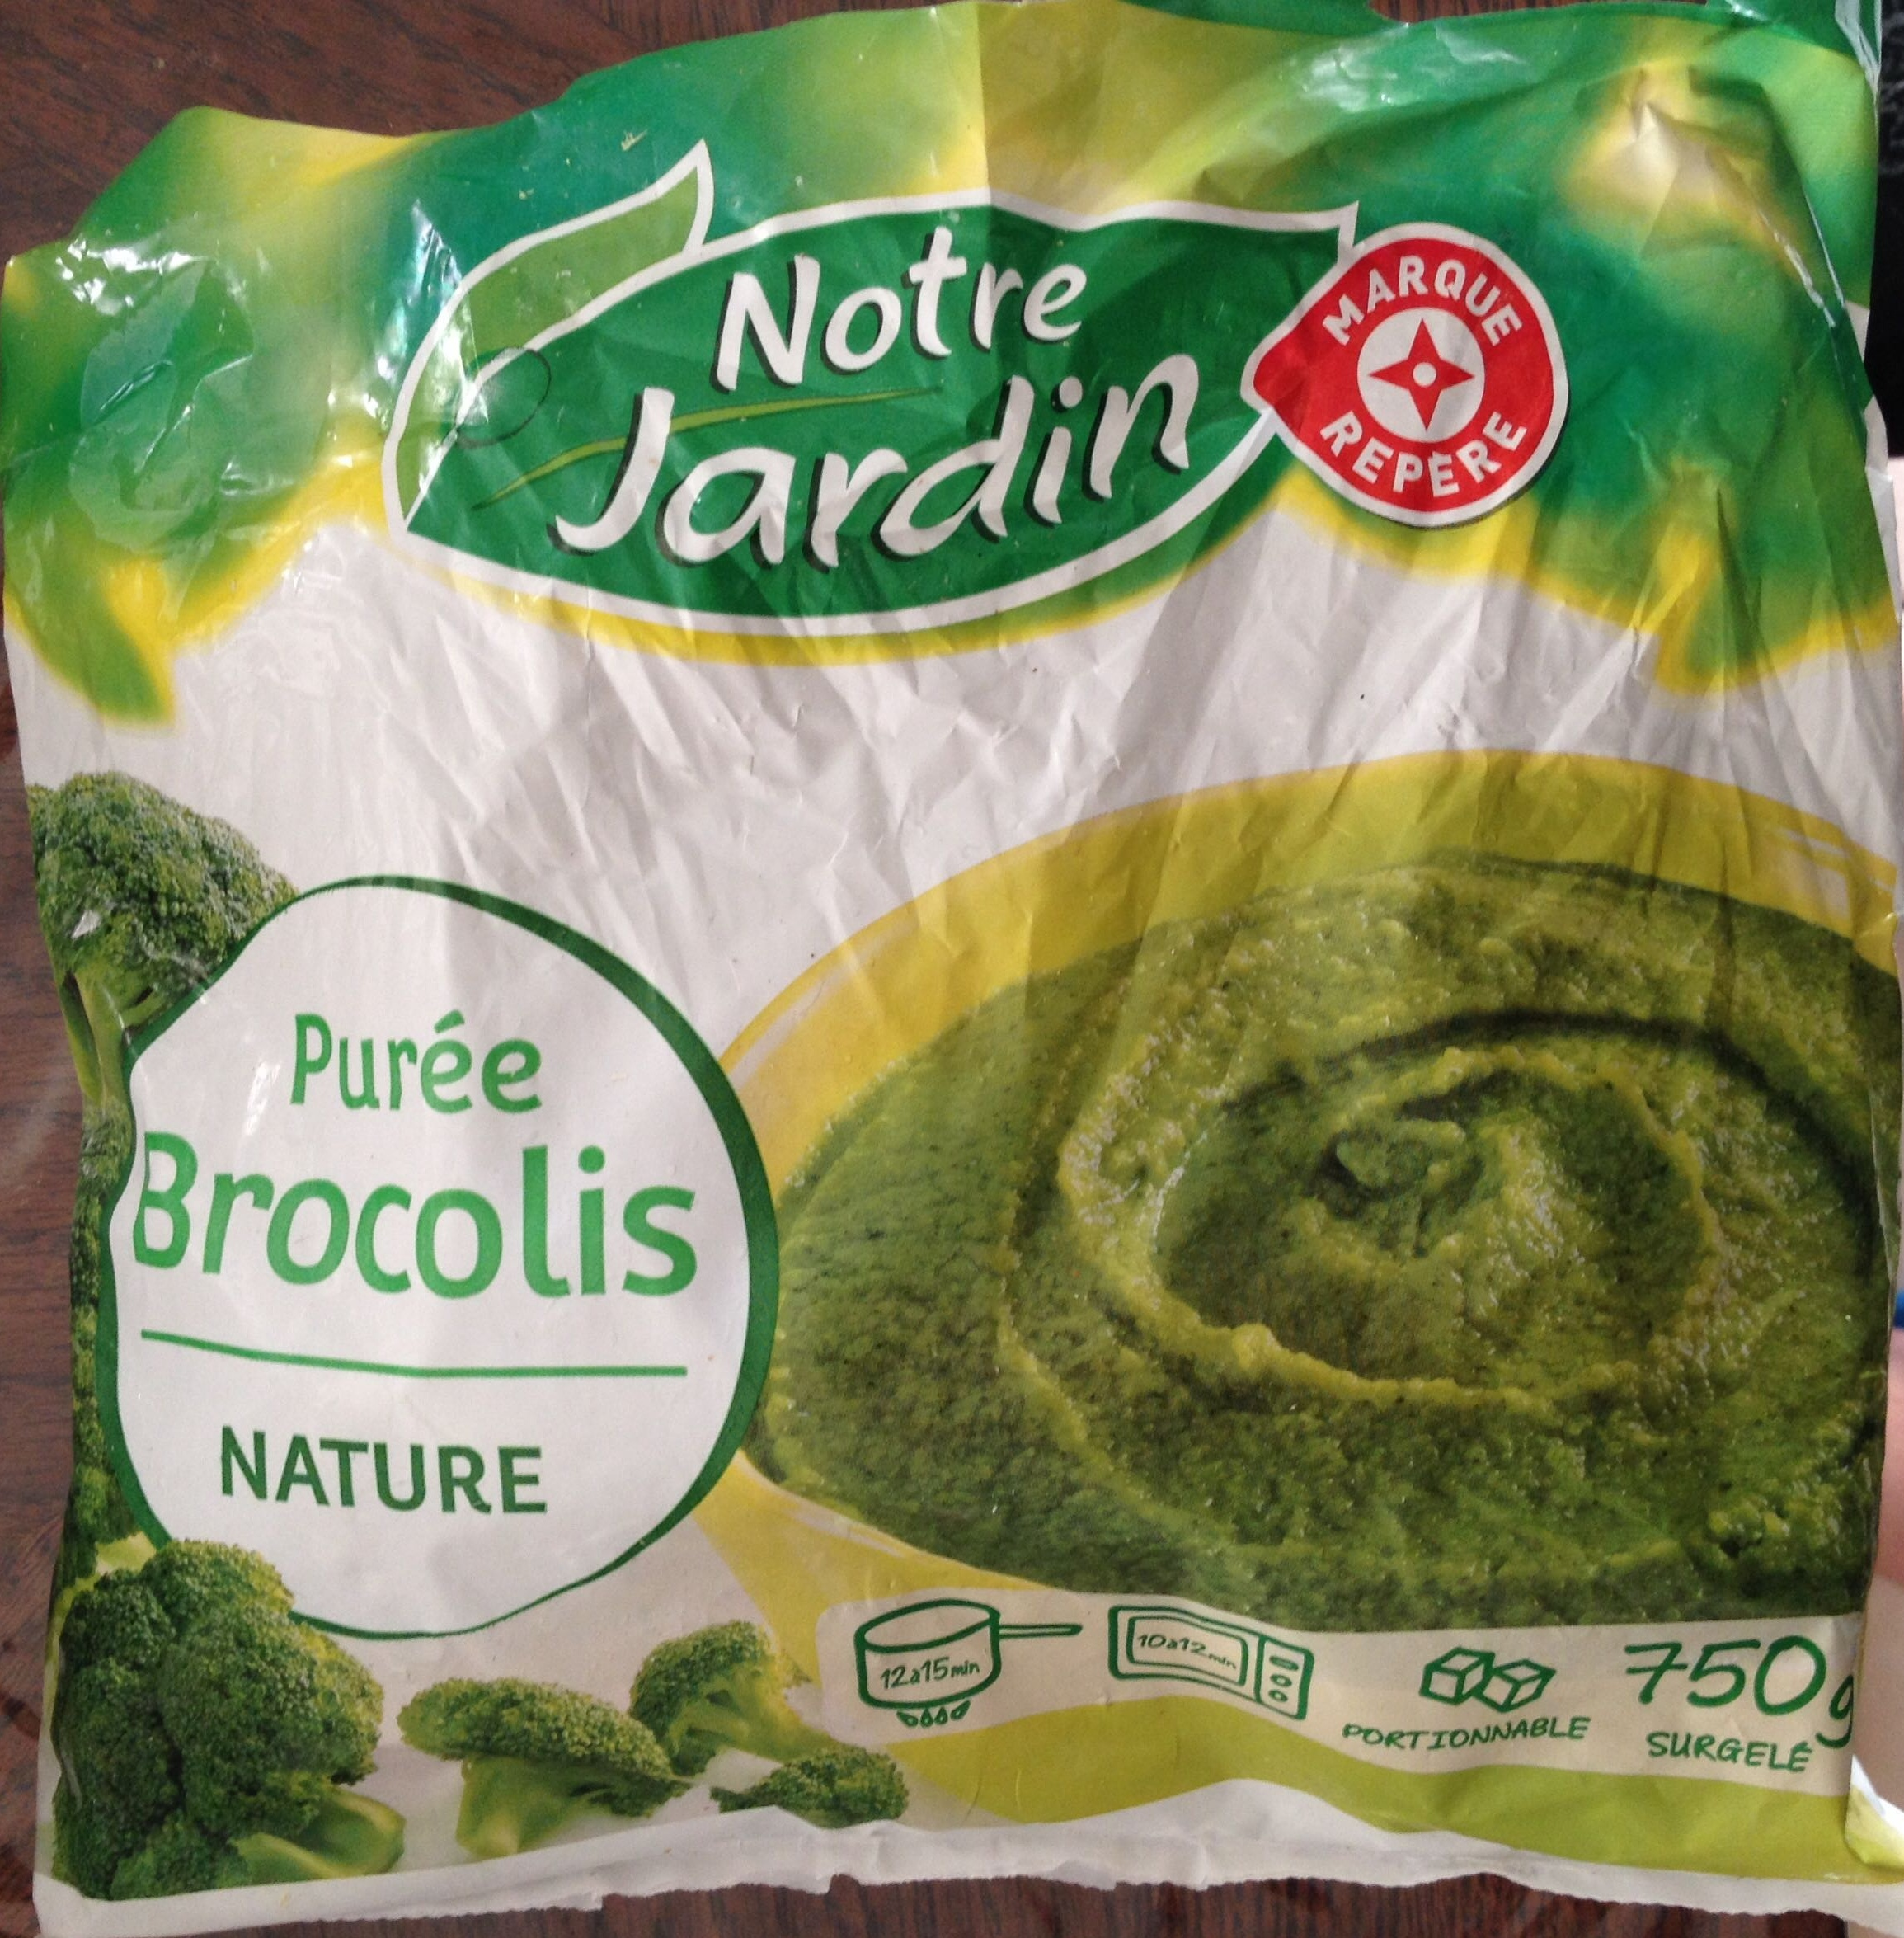 Purée Brocolis nature - Product